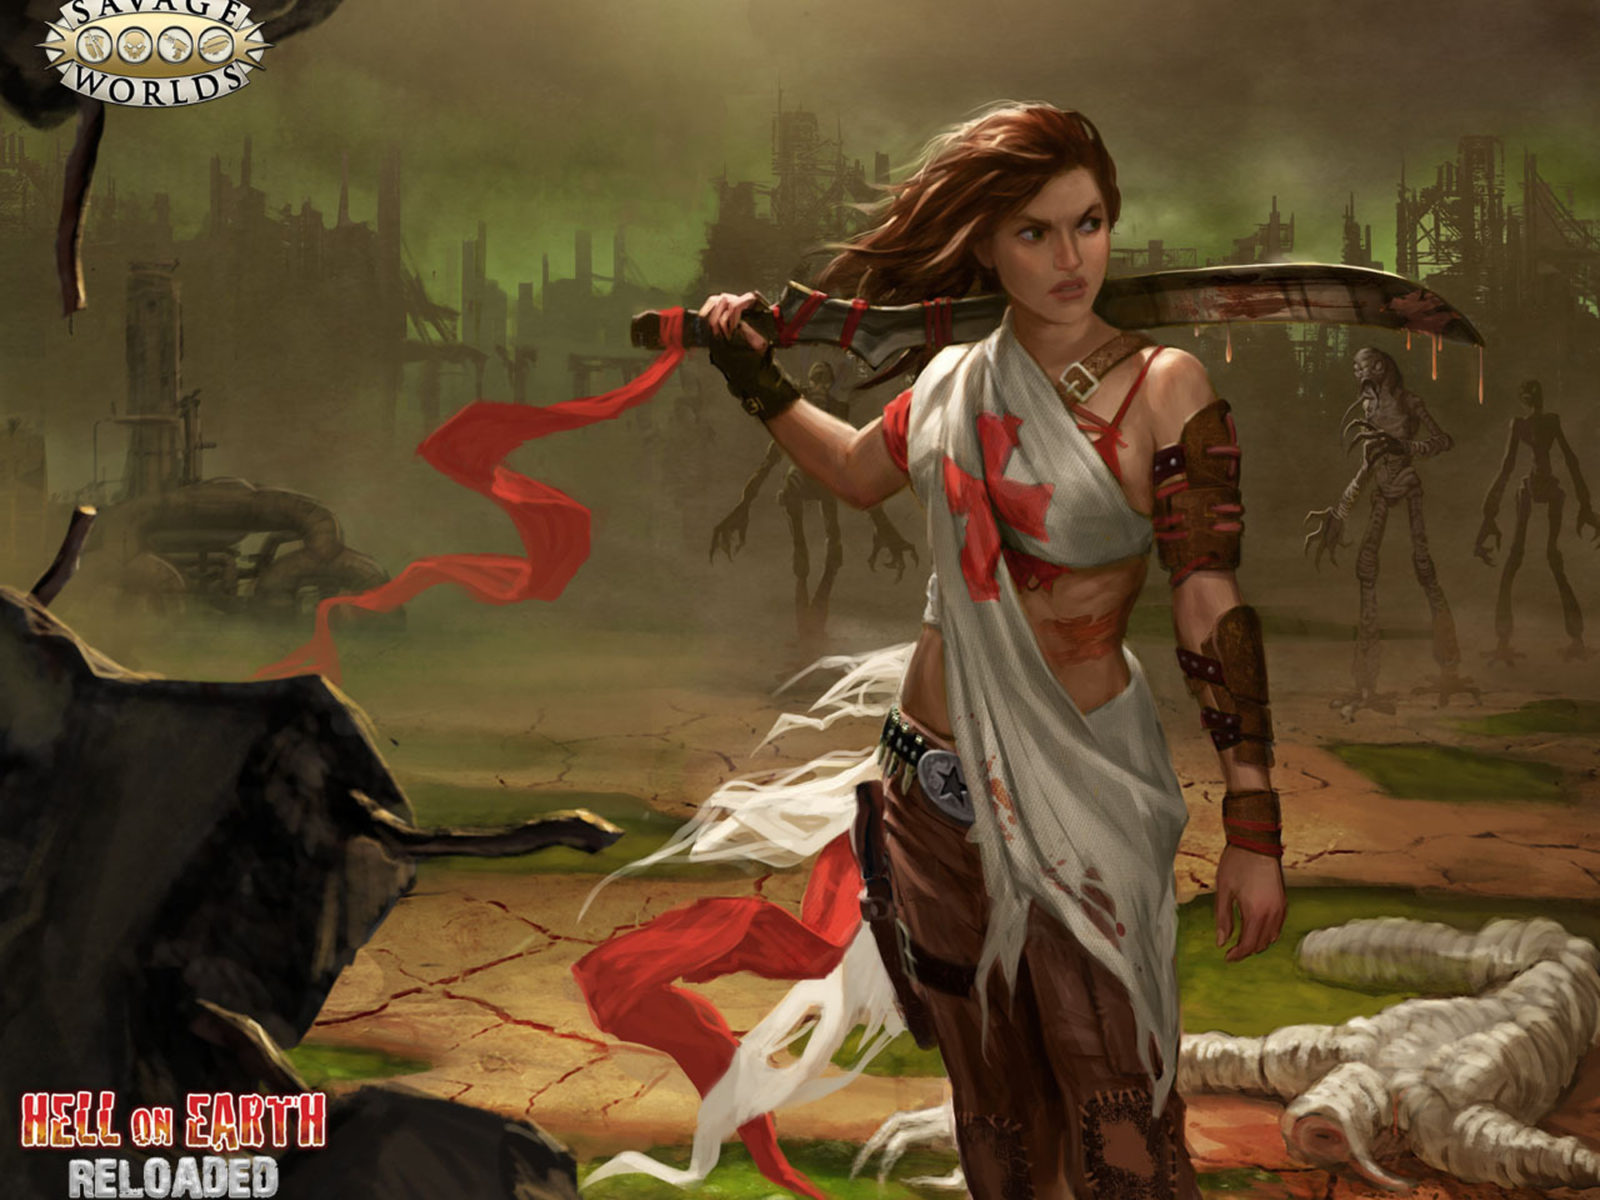 New Girl Hd Wallpaper Download Deadlands Hell On Earth Reloaded 2d Post Apocalyptic